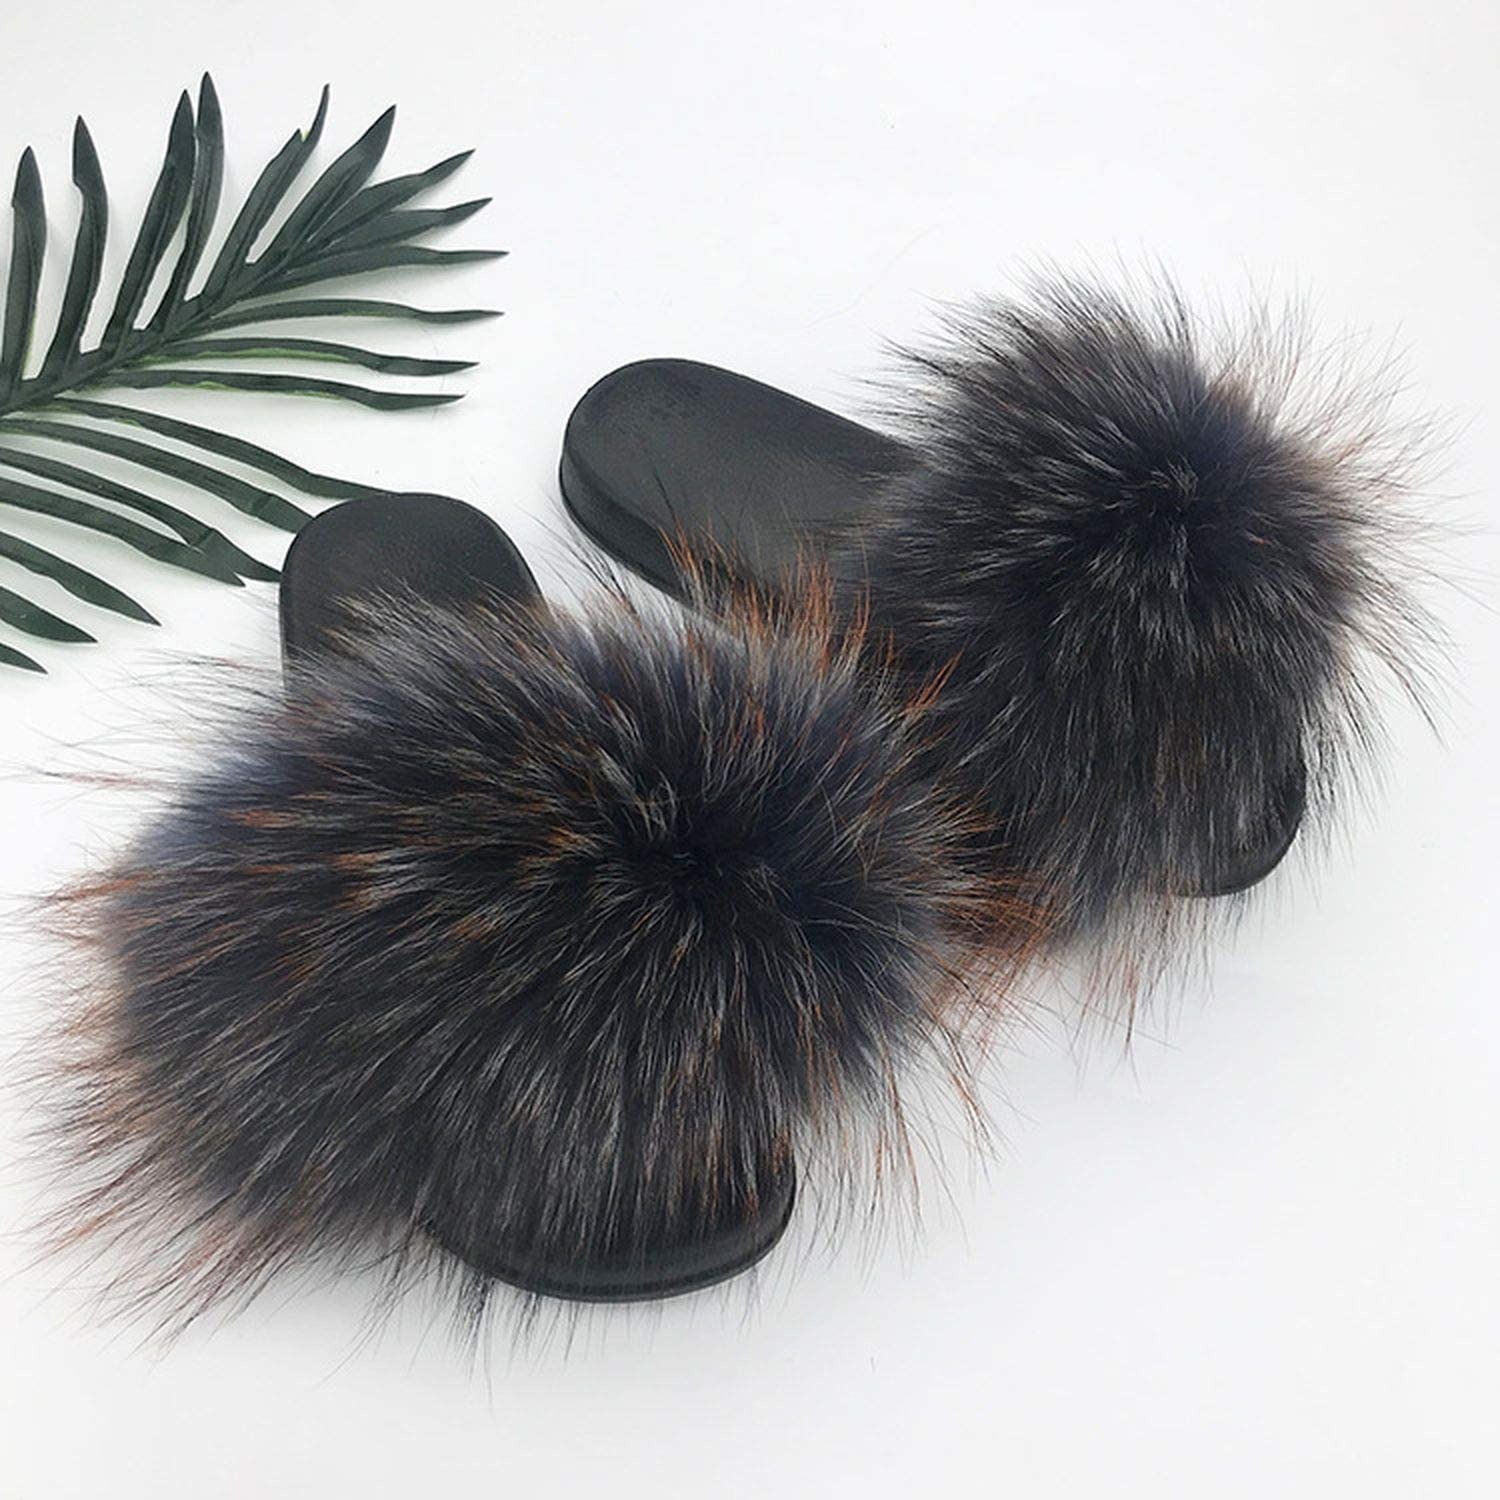 Blingbling-honored High end Real Raccoon Fur Slippers Women 2019 Sliders Casual Fox Hair Flat Fluffy Fashion Home Summer Big Size 45 Furry Flip Flops shoes